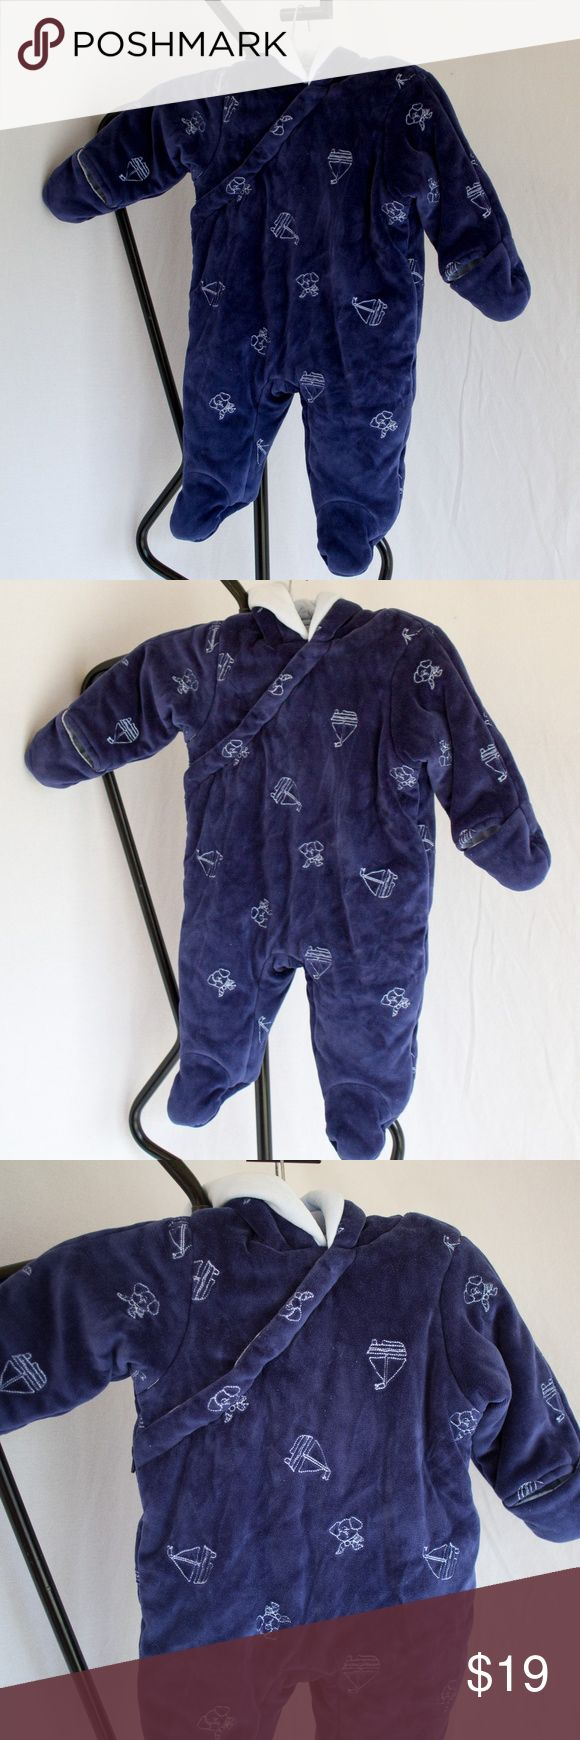 First Impressions Nautical Baby Bunting Size 36M